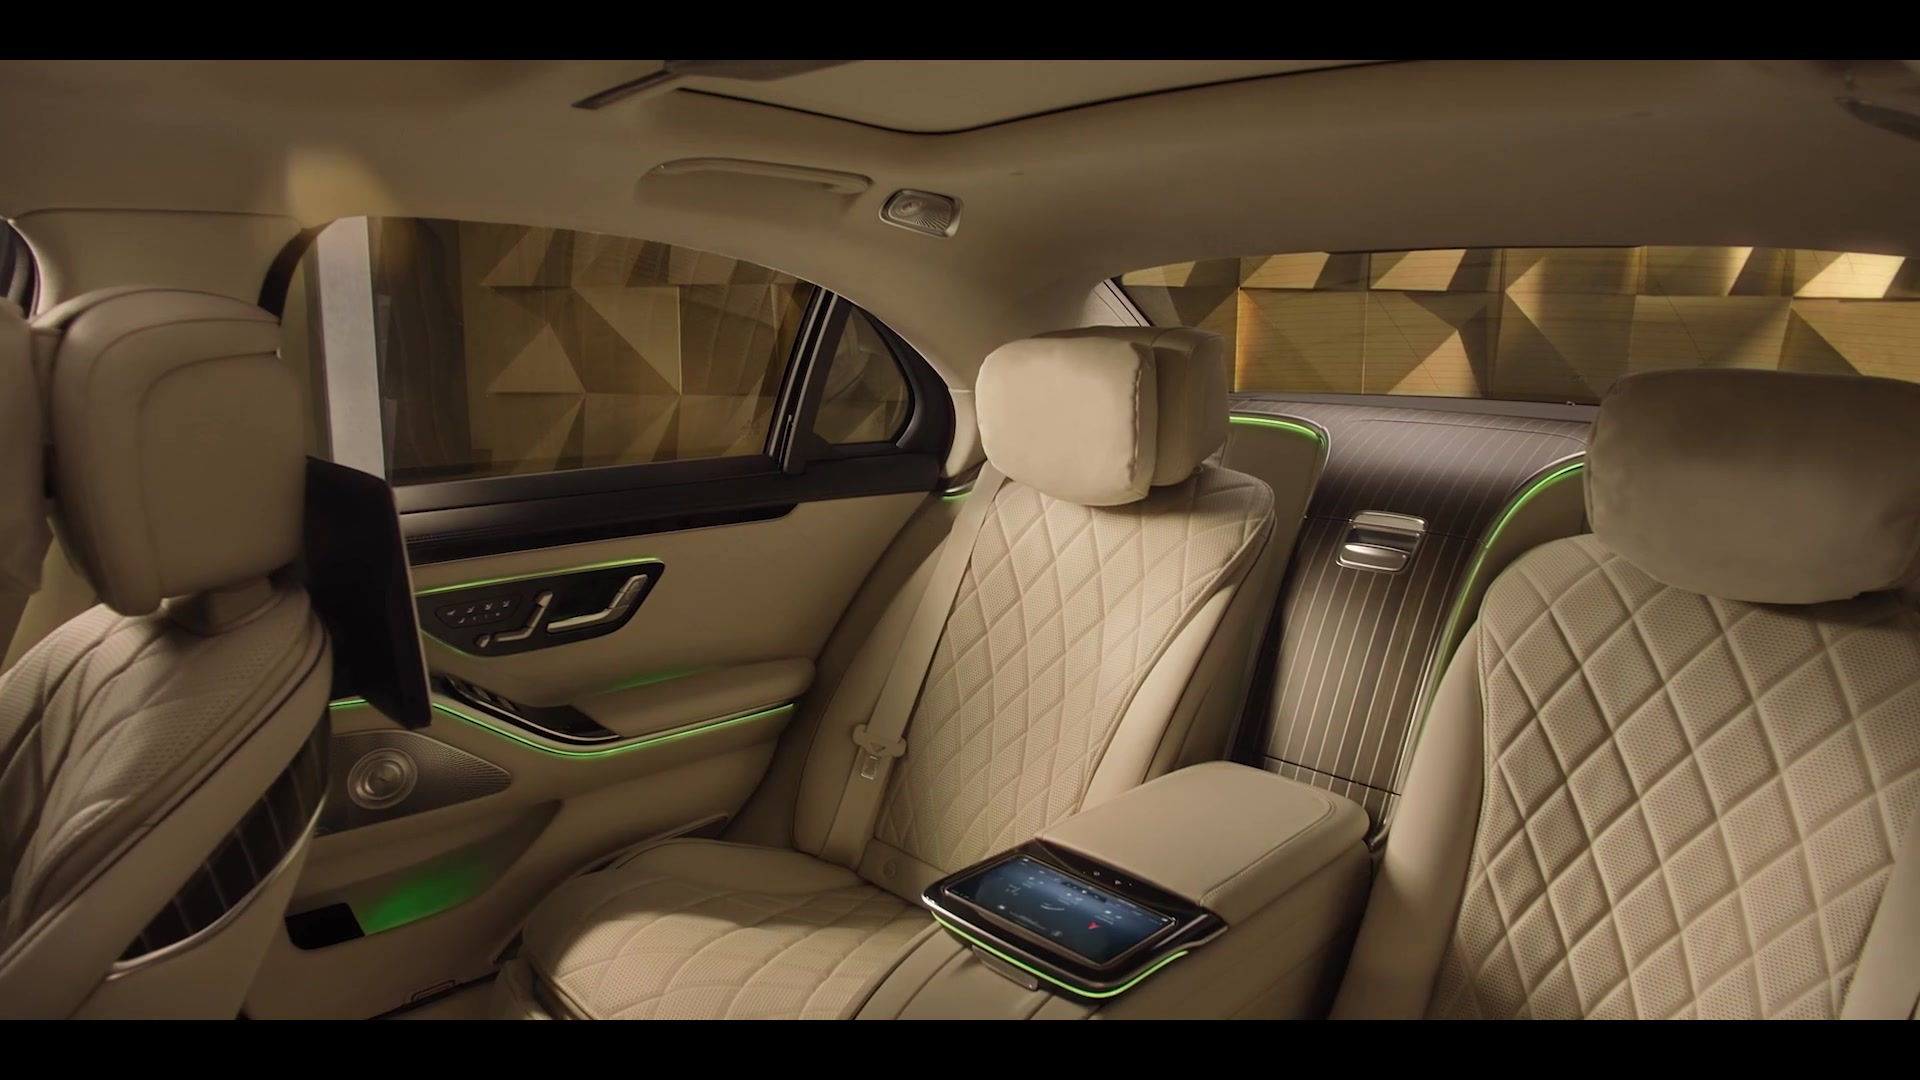 2020 09 02 Screenshot Digital World Premiere of the new S Class 21 36 1